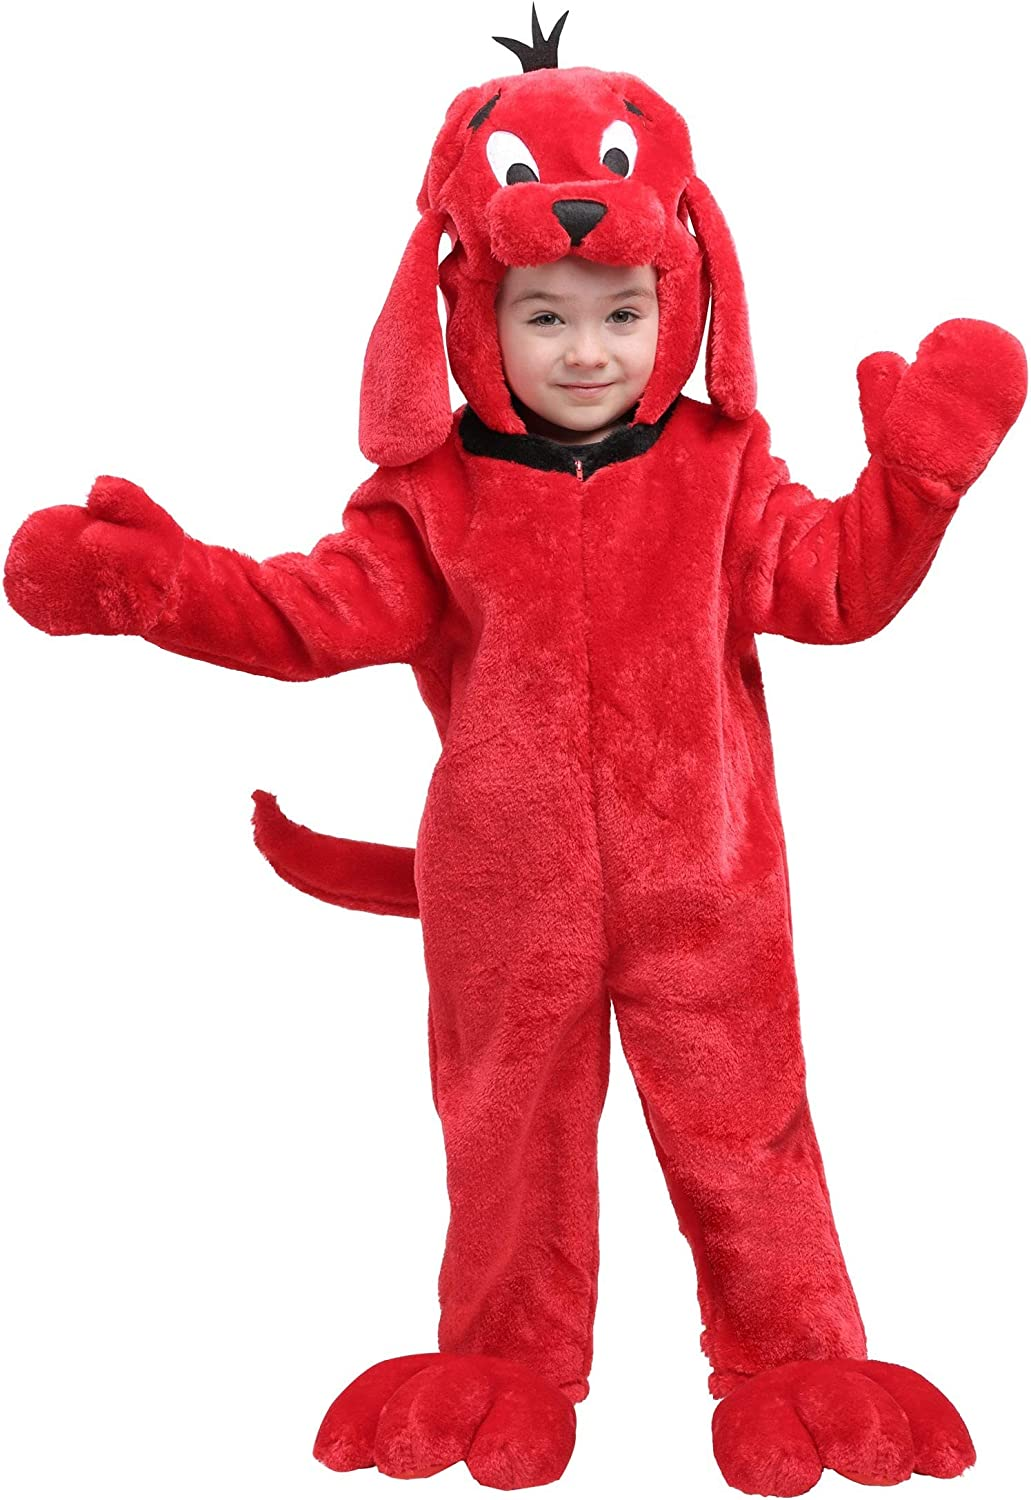 Sales results No. 1 Clifford The Big Red Toddler Costume Dog Financial sales sale